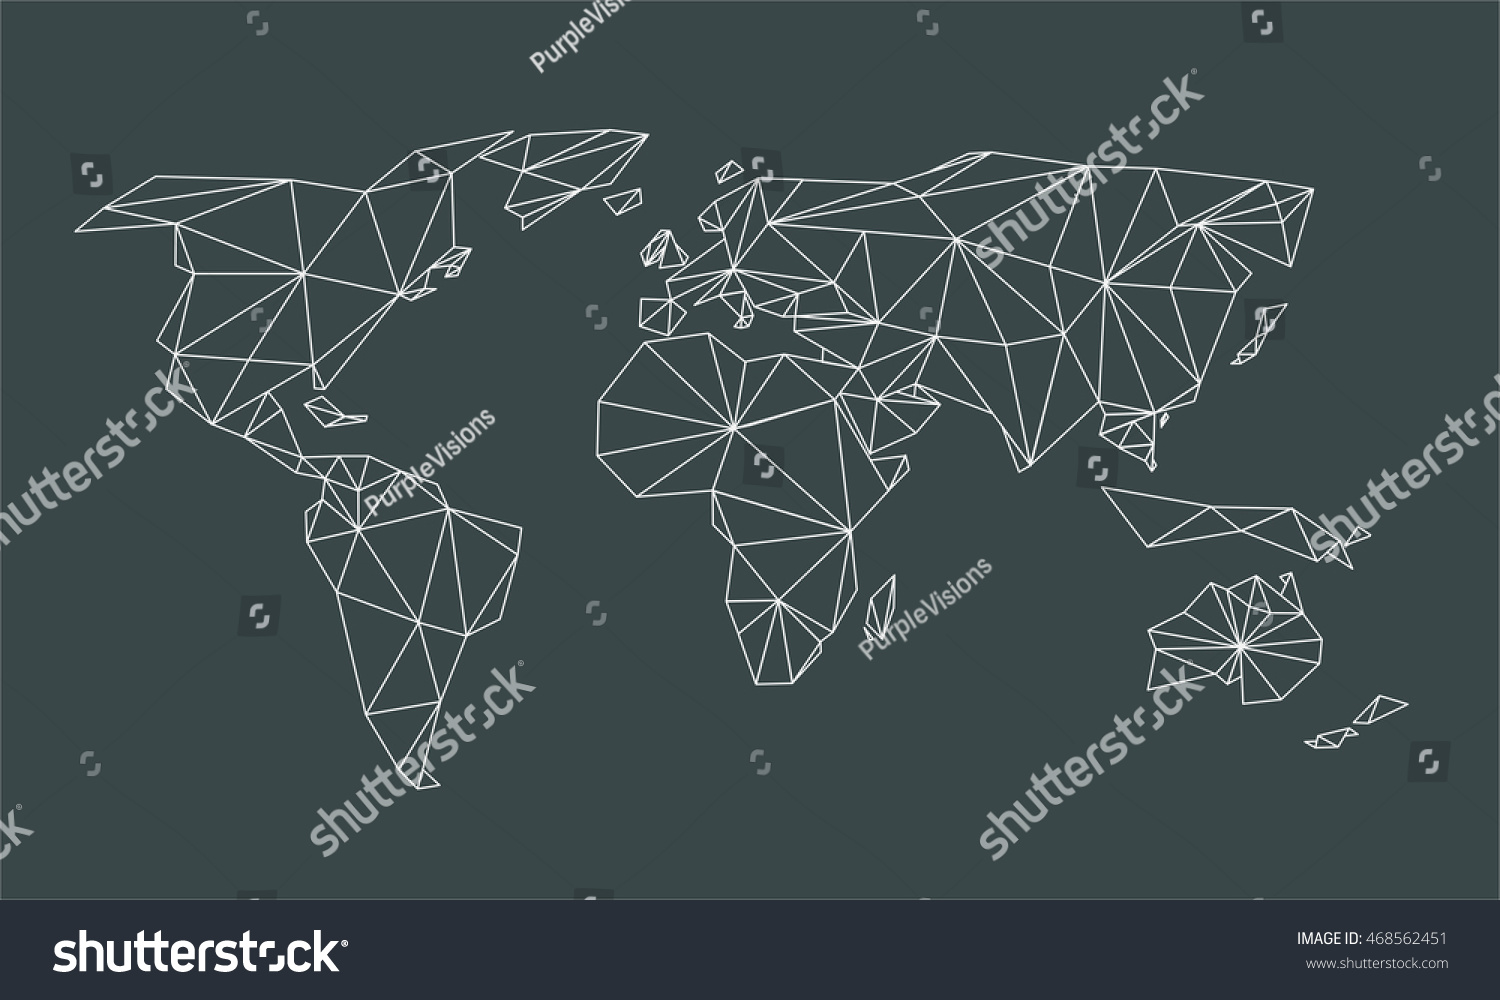 Triangle line world map vector net stock vector 468562451 shutterstock triangle line world map vector net of white lines triangles on black background gumiabroncs Gallery